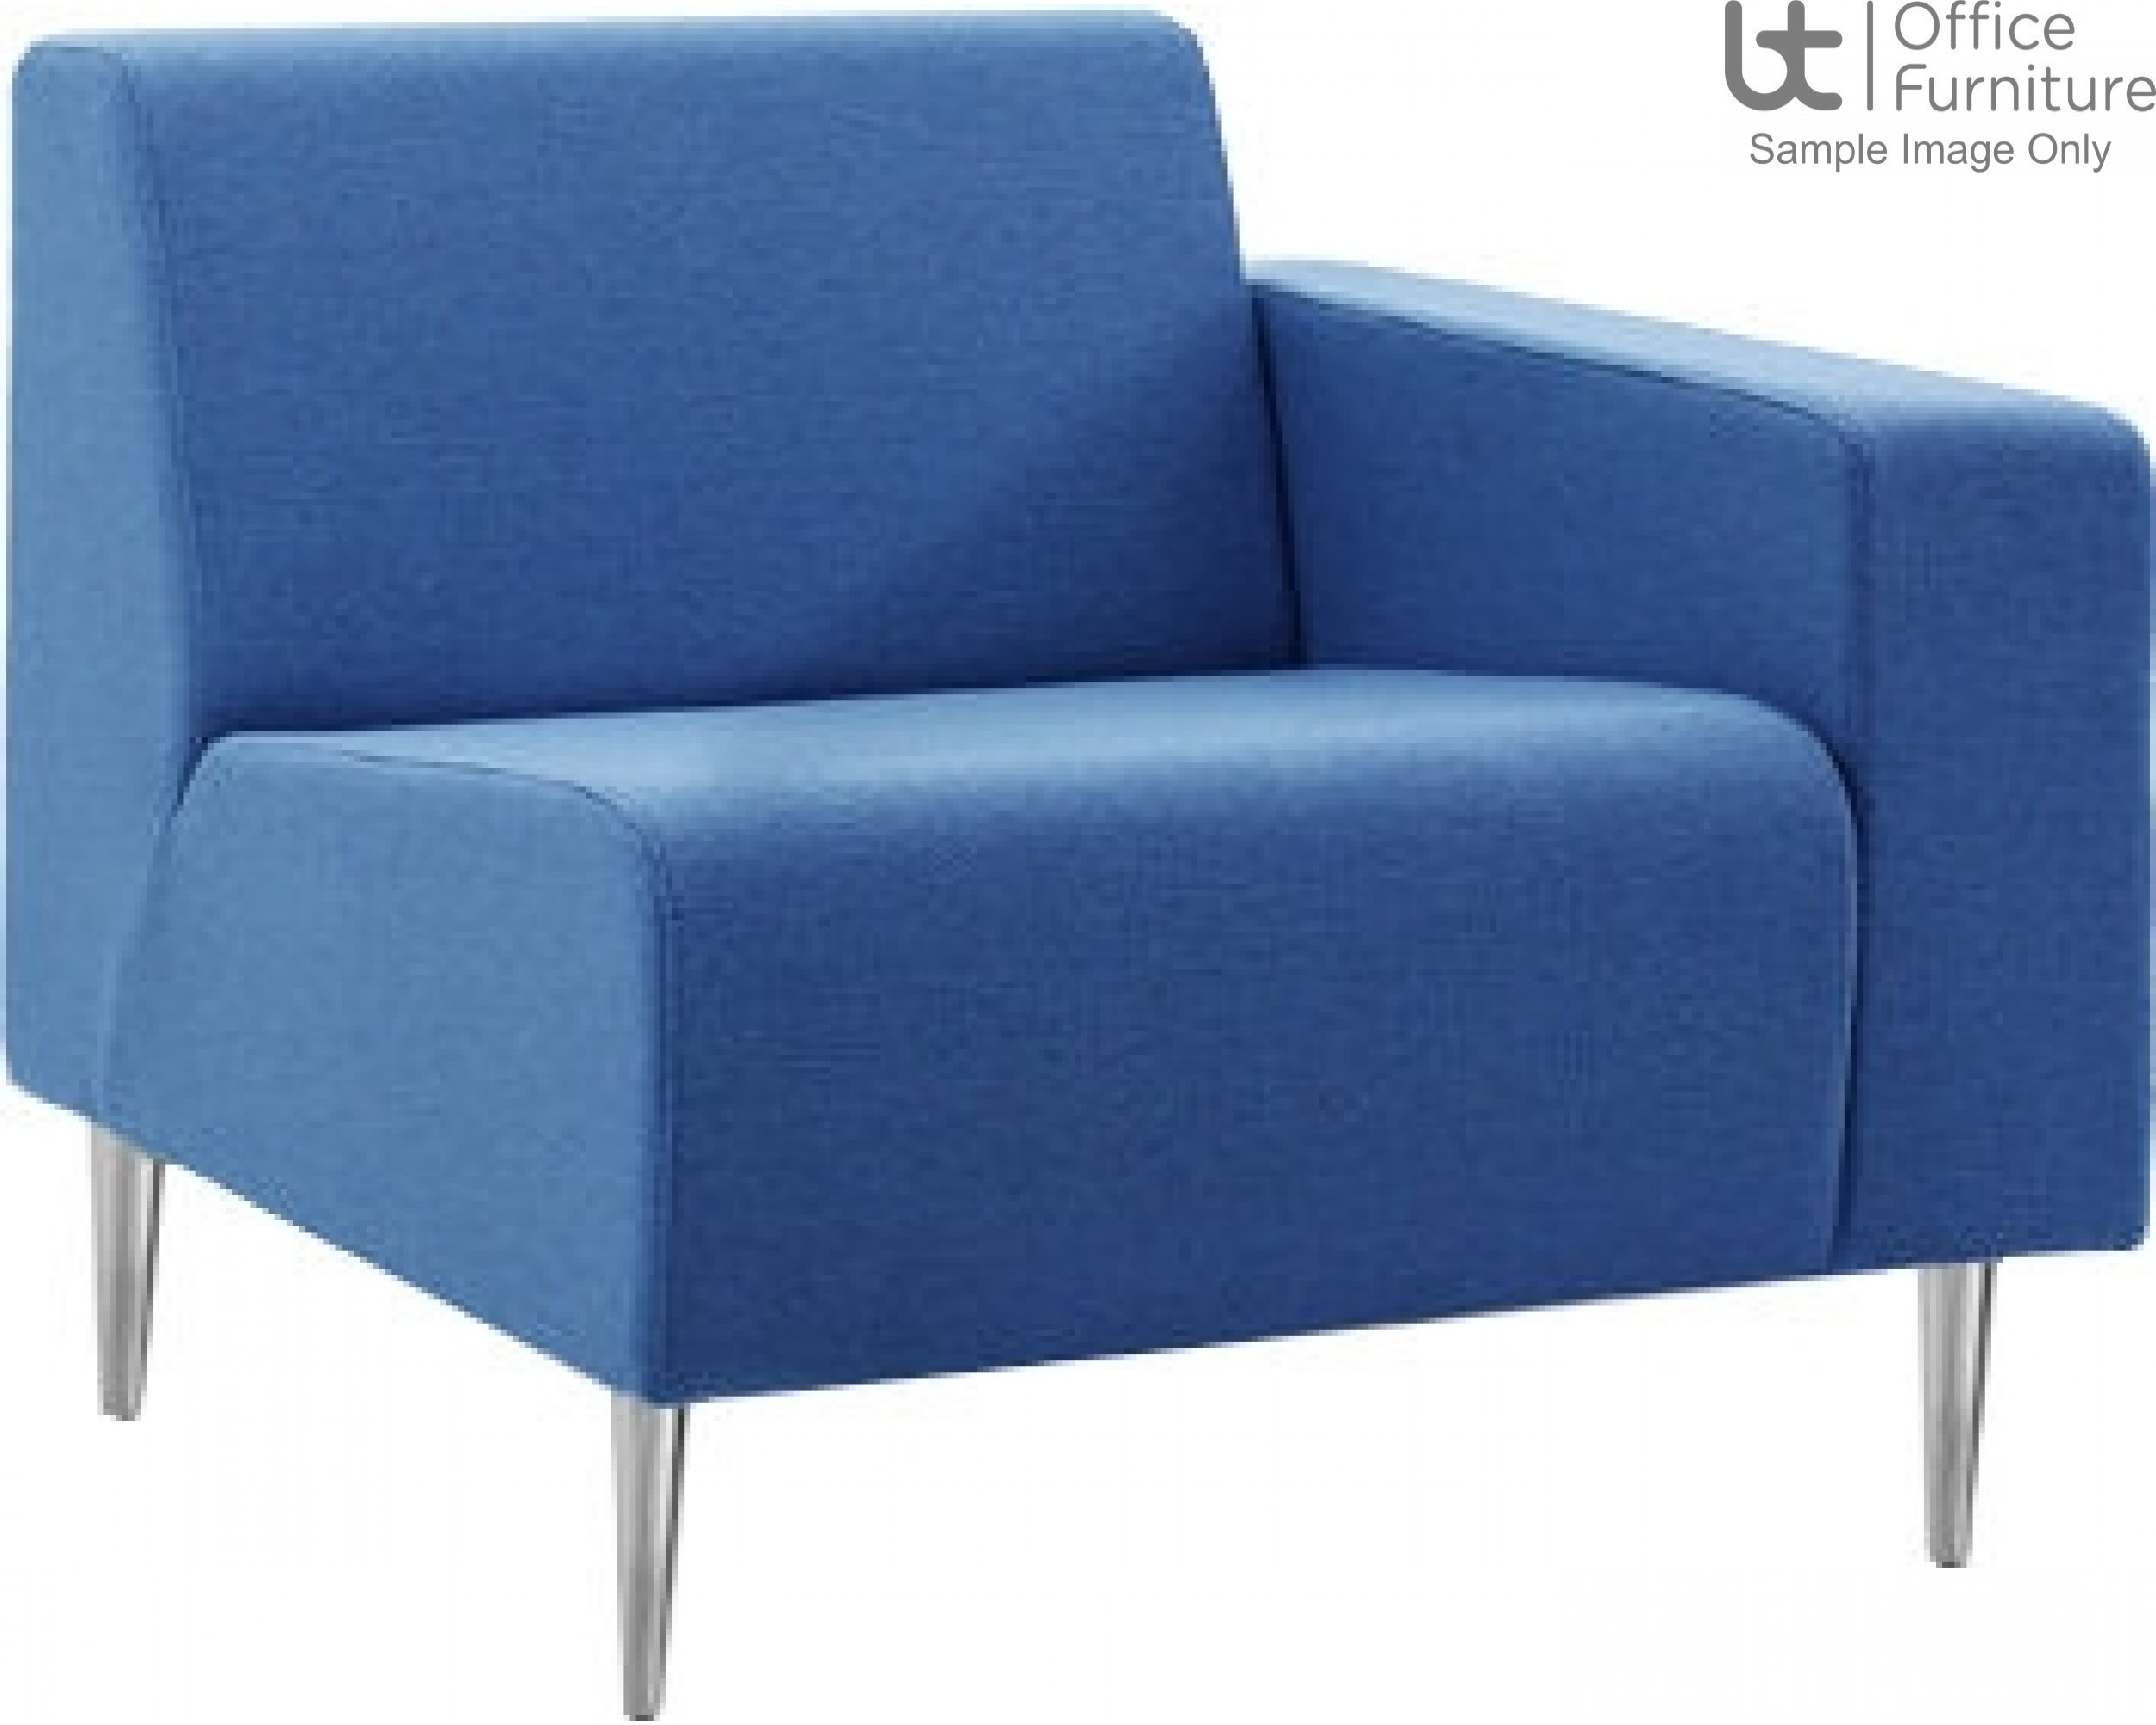 Verco Soft Seating - Bradley Single Couch with a Left Hand Facing Arm